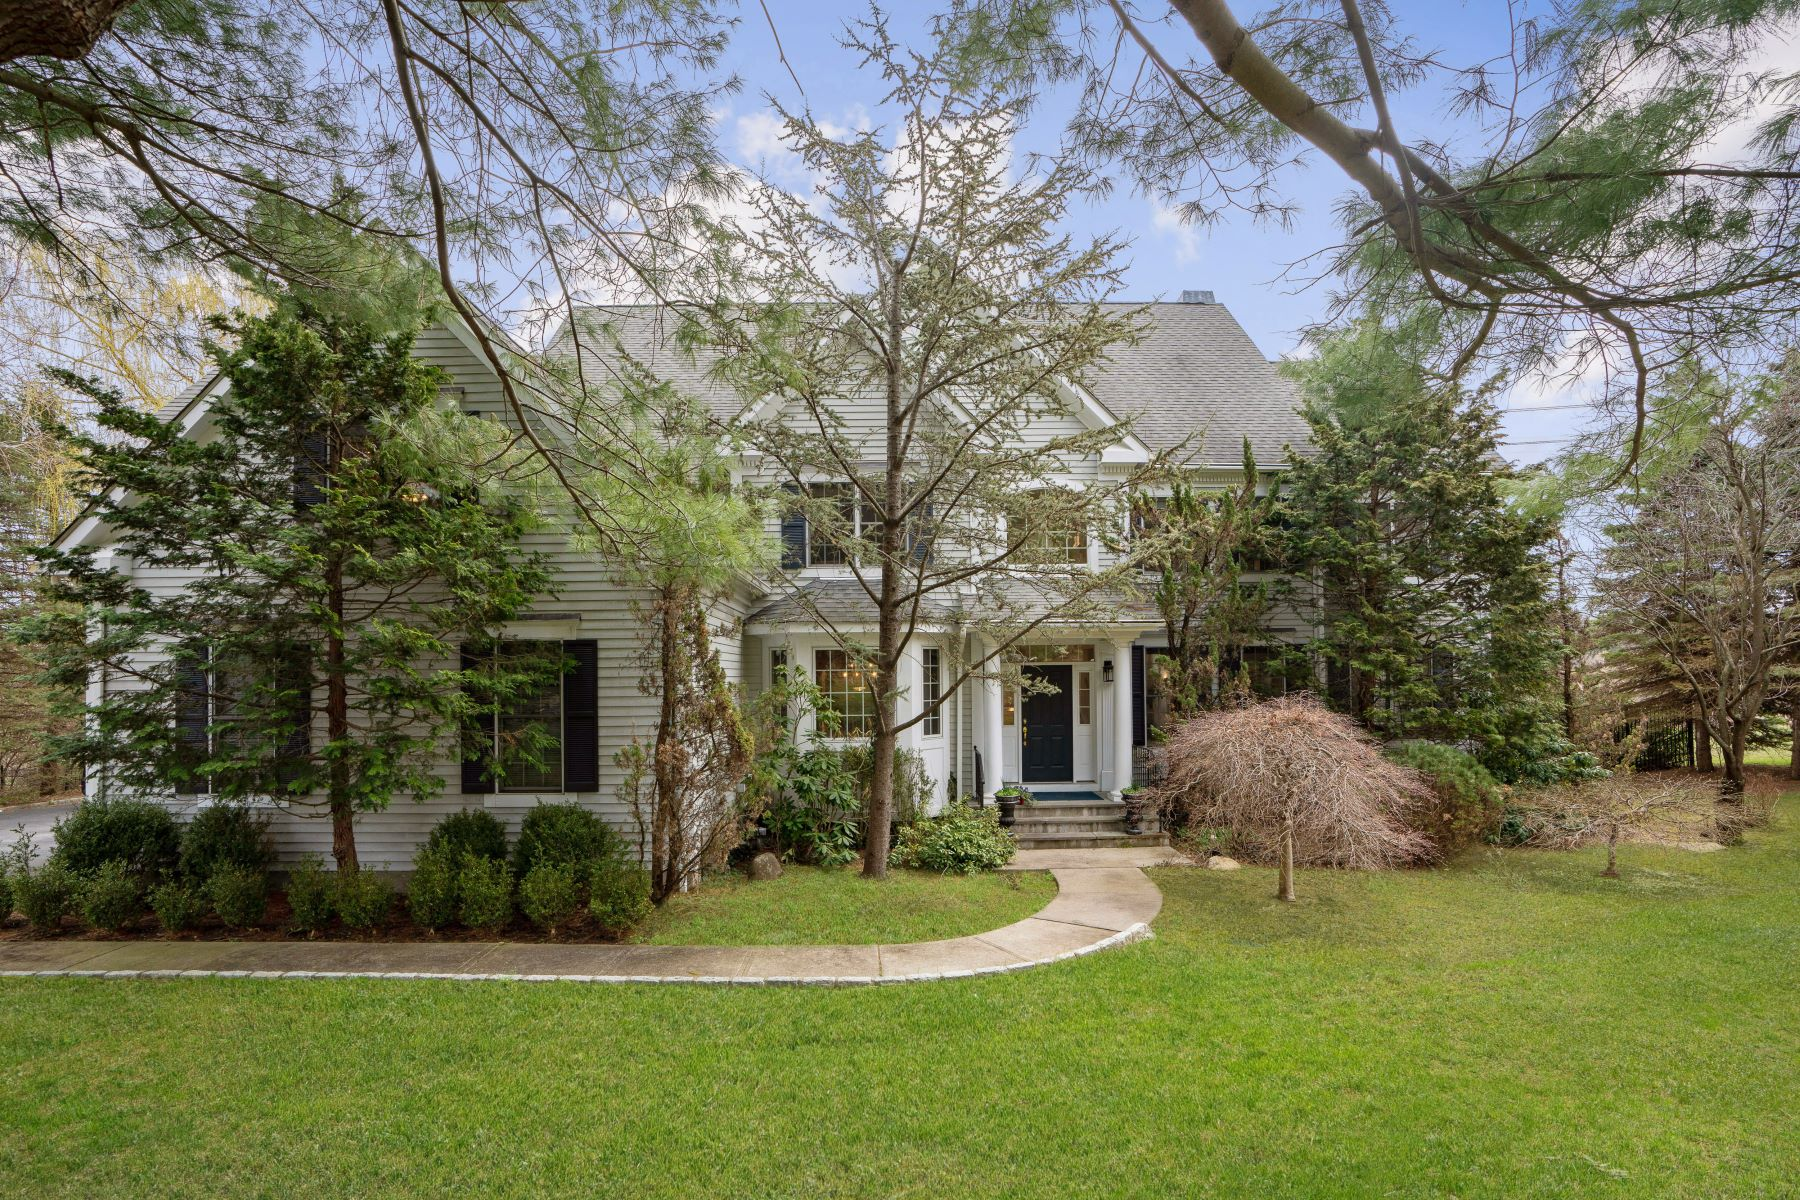 Single Family Homes for Active at Light Filled Colonial with Lush Park-Like Grounds 3 Jordan Lane Ardsley, New York 10502 United States